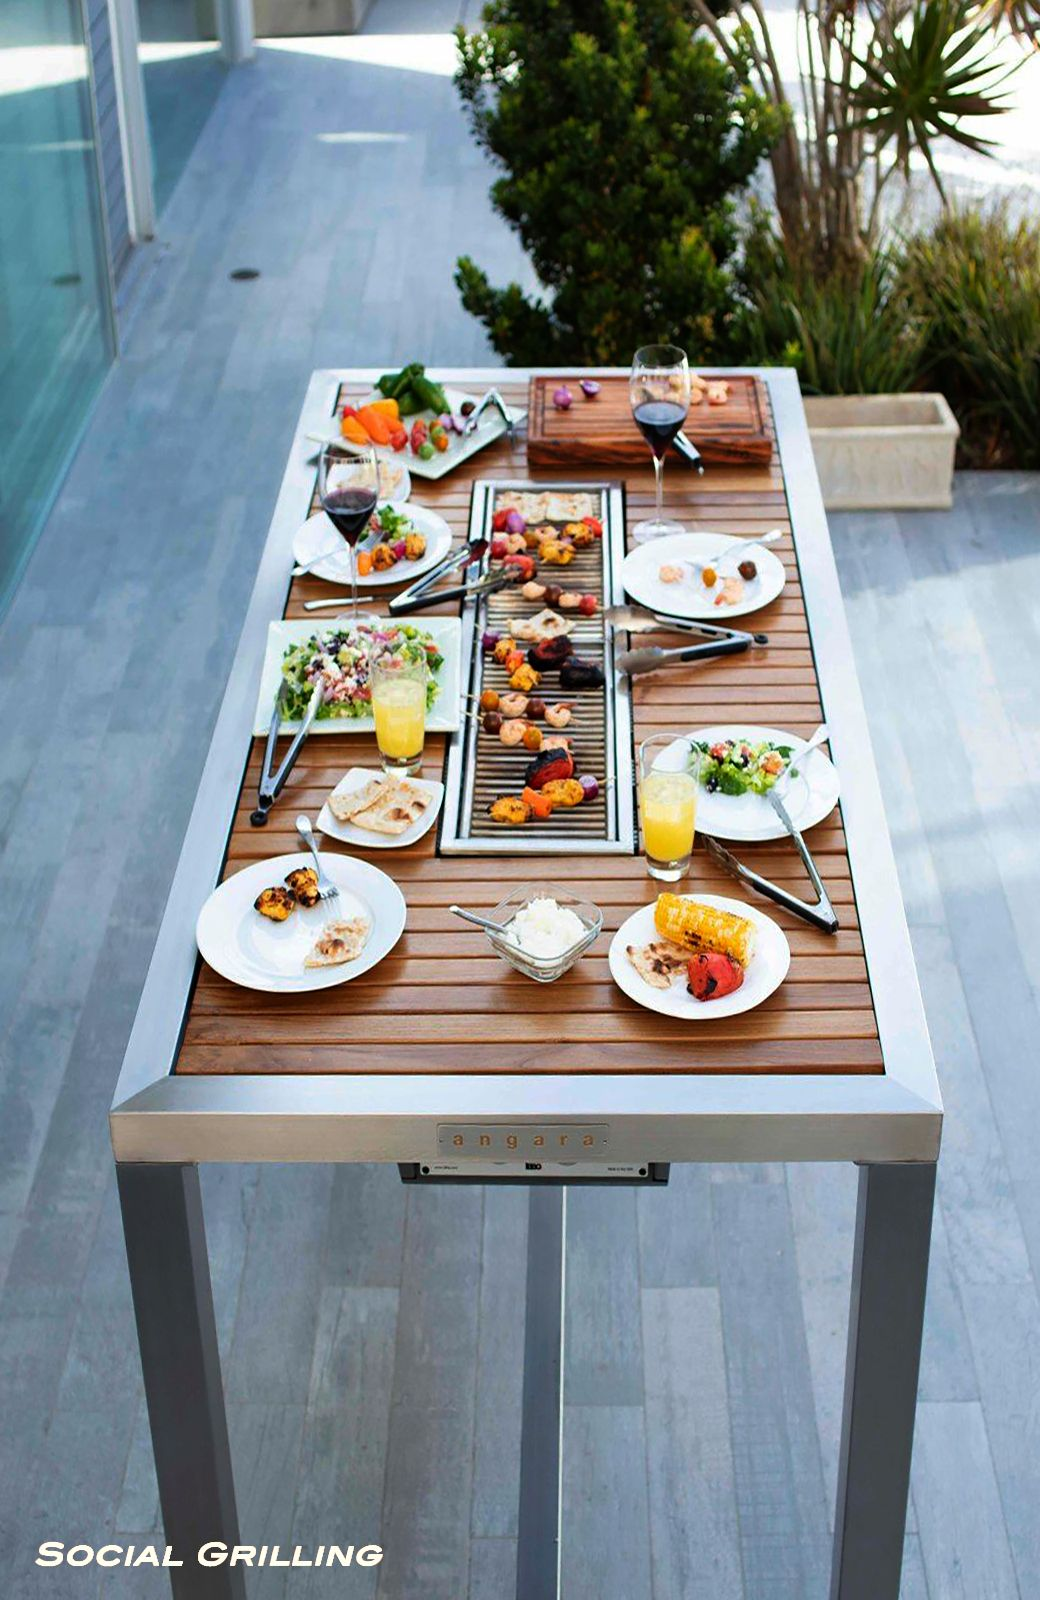 We Make Grilling Fun Ibbq Outdoorbbq Socialgrilling Outdoor Bbq Grill Modern Outdoor Dining Table Outdoor Bbq